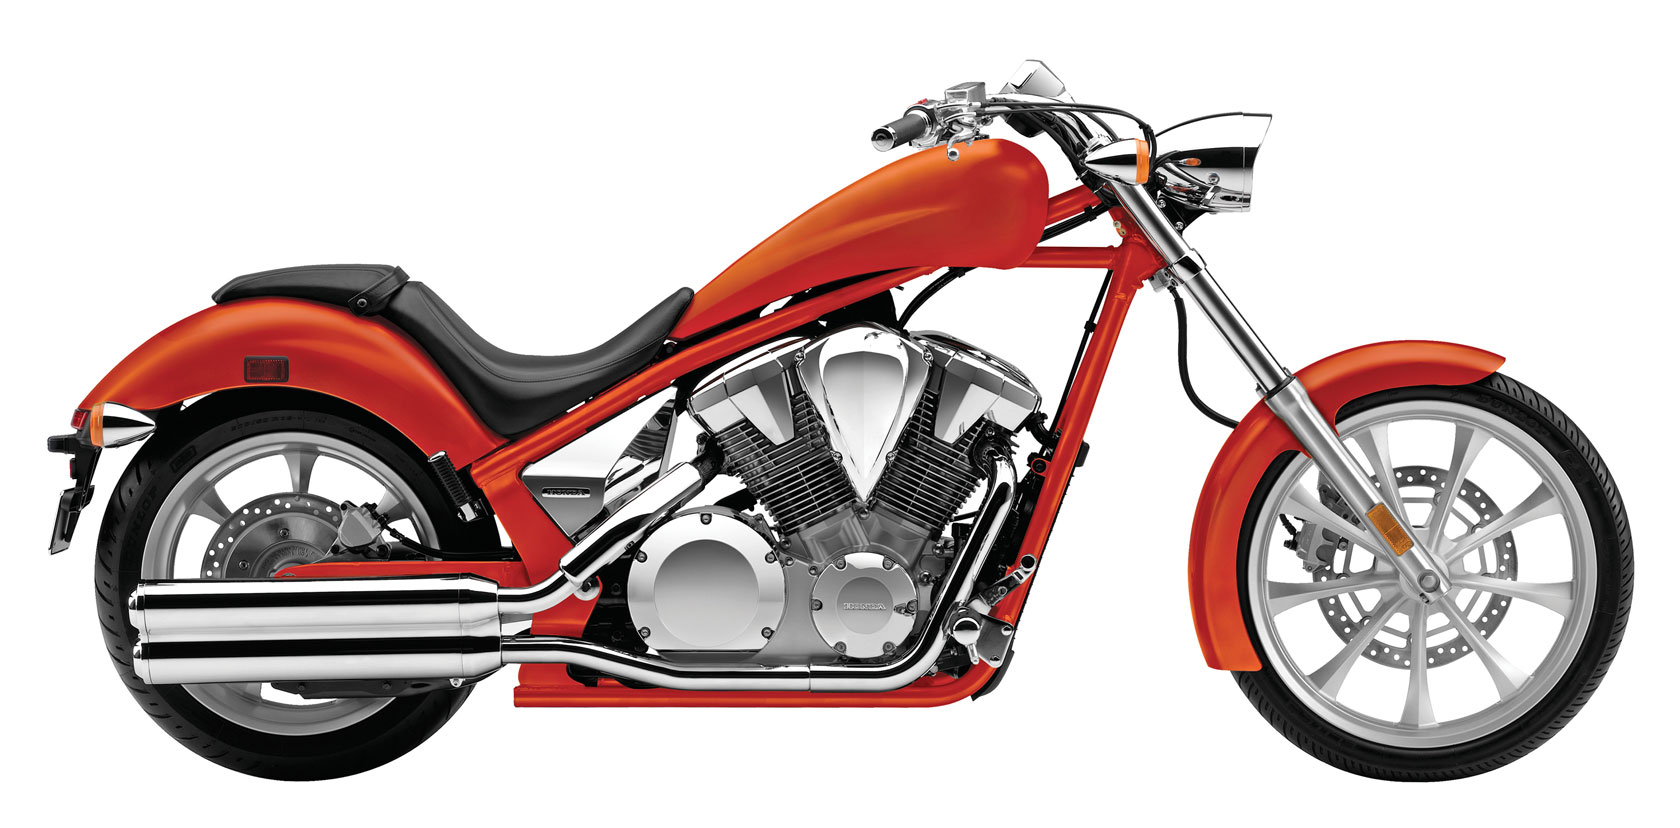 Honda Fury ABS 2010 #10